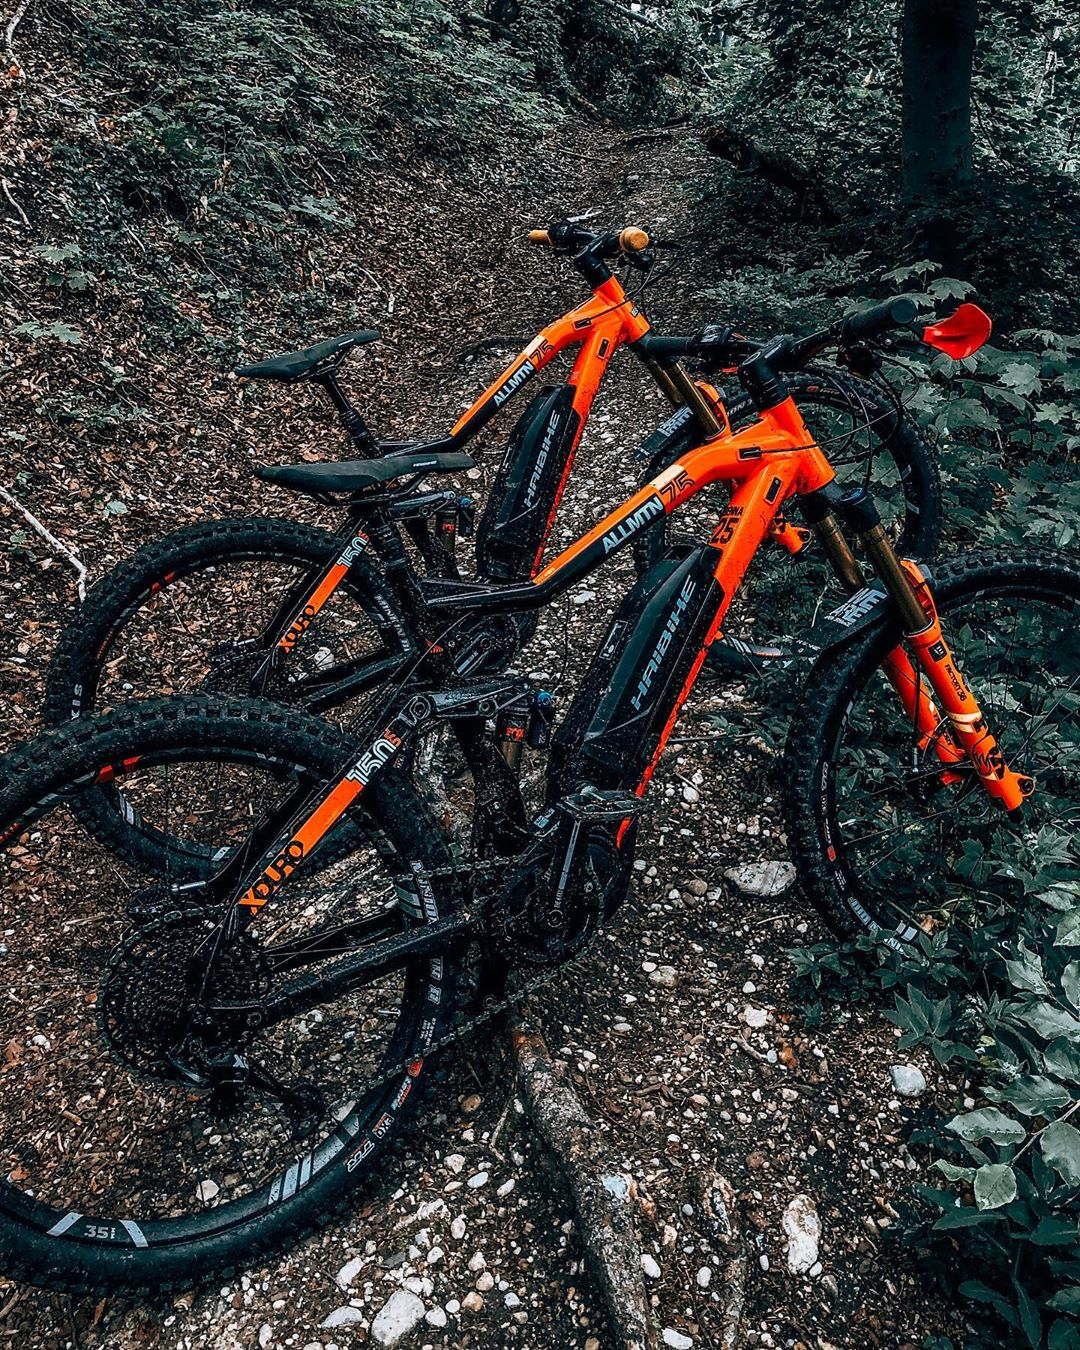 Extroverts! #emtb #design #haibike #allmtn #ride100percent